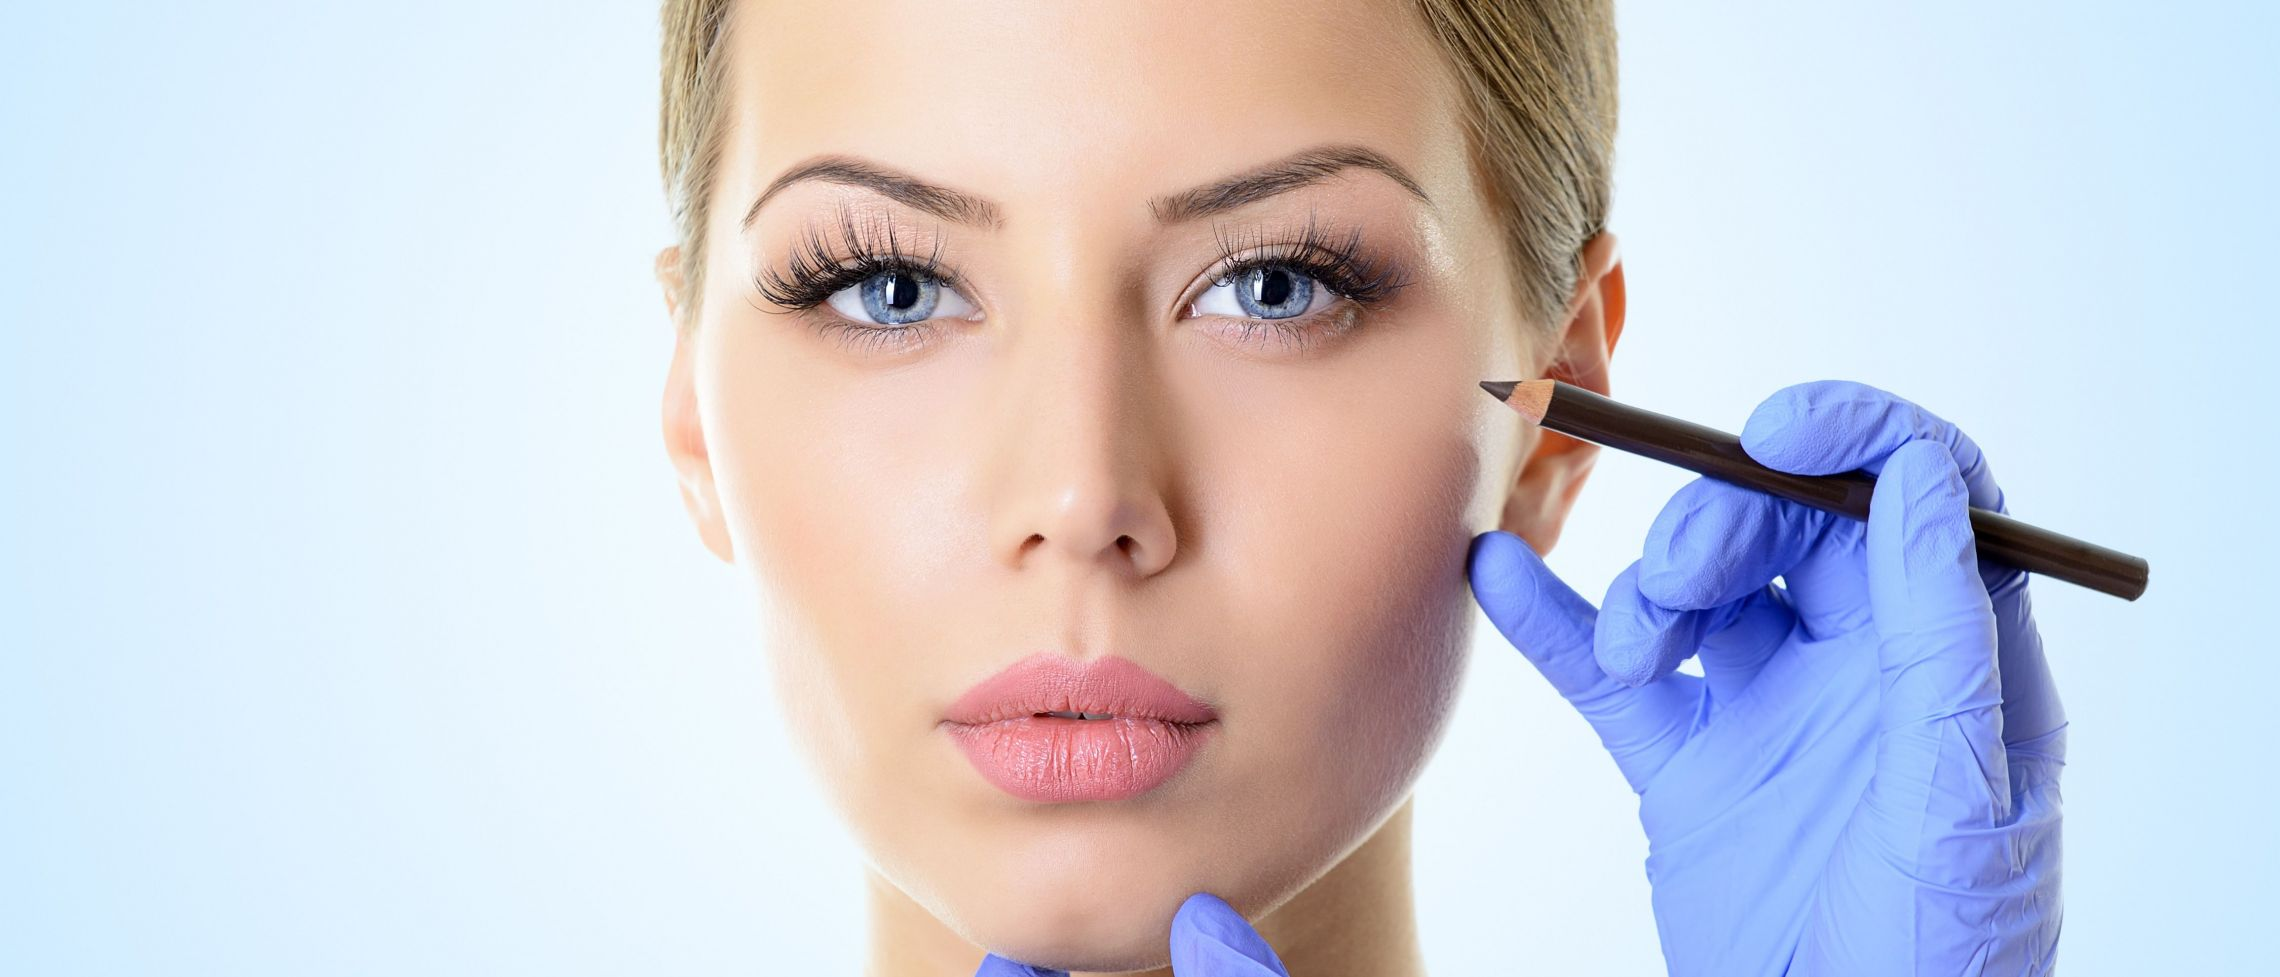 Revealed: Twelve top tips for avoiding dodgy cosmetic treatments